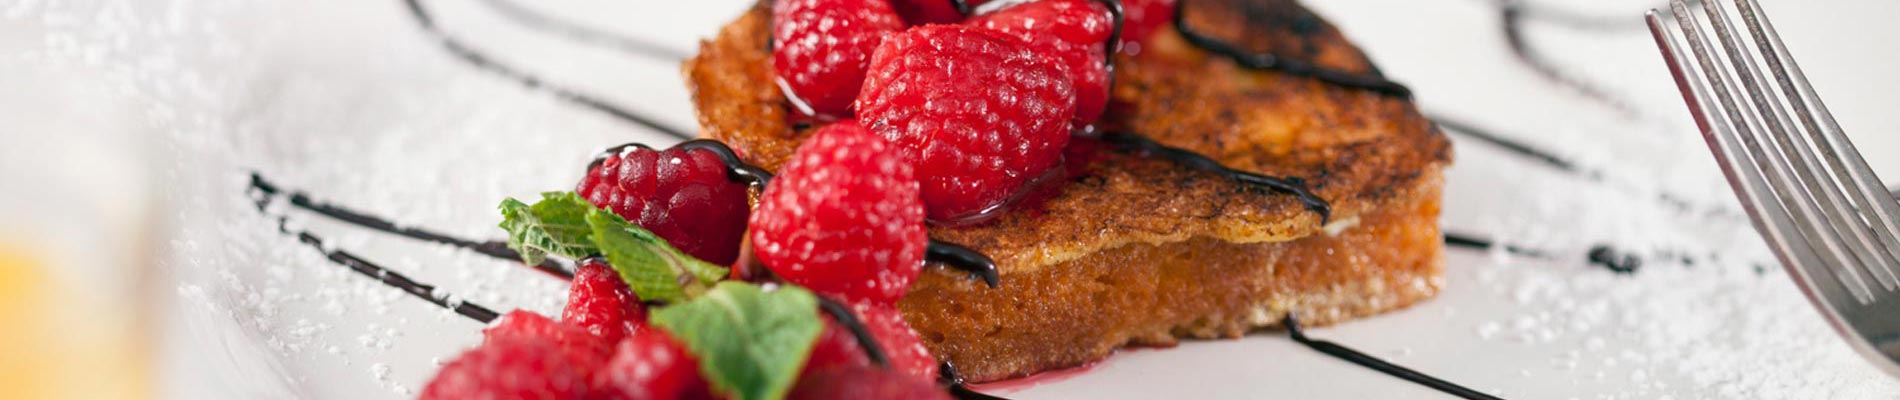 French Toast with Raspberries and Chocolate Sauce